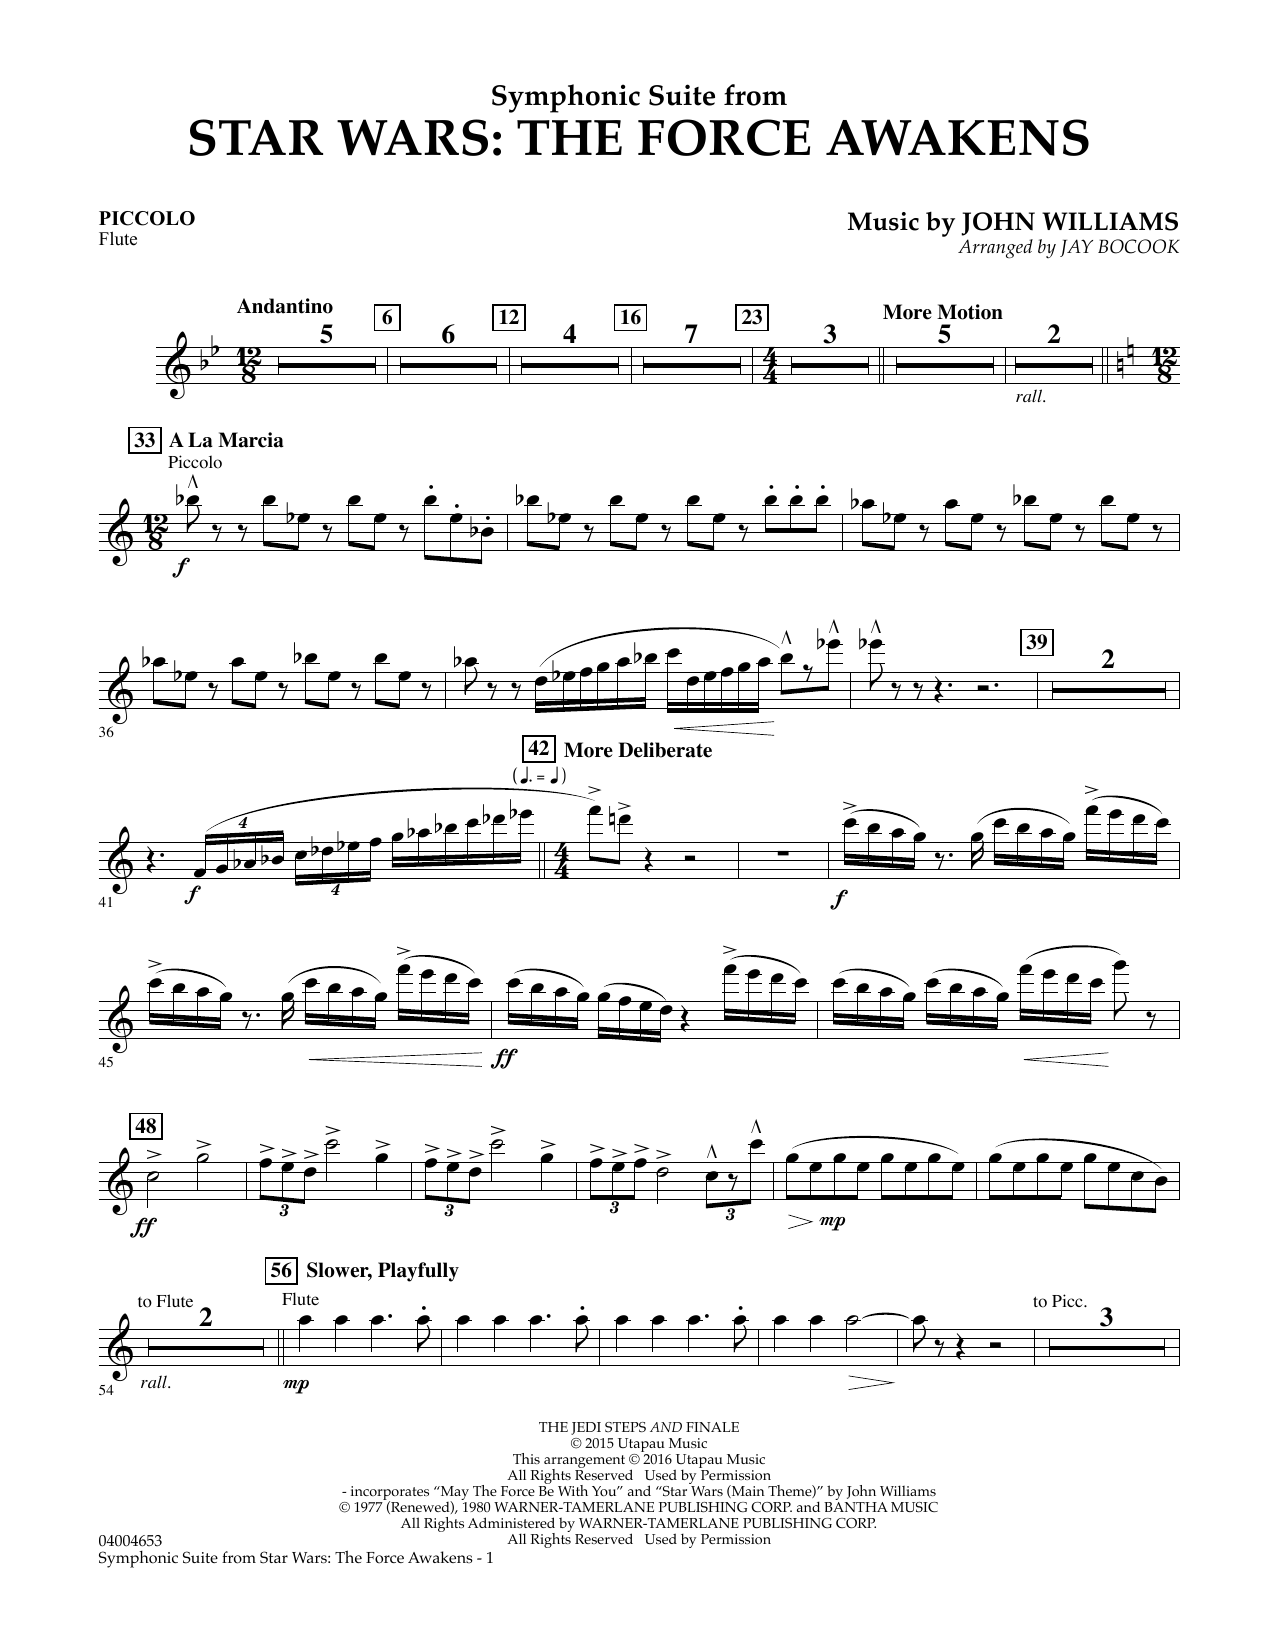 John Williams - Symphonic Suite from Star Wars: The Force Awakens - Piccolo